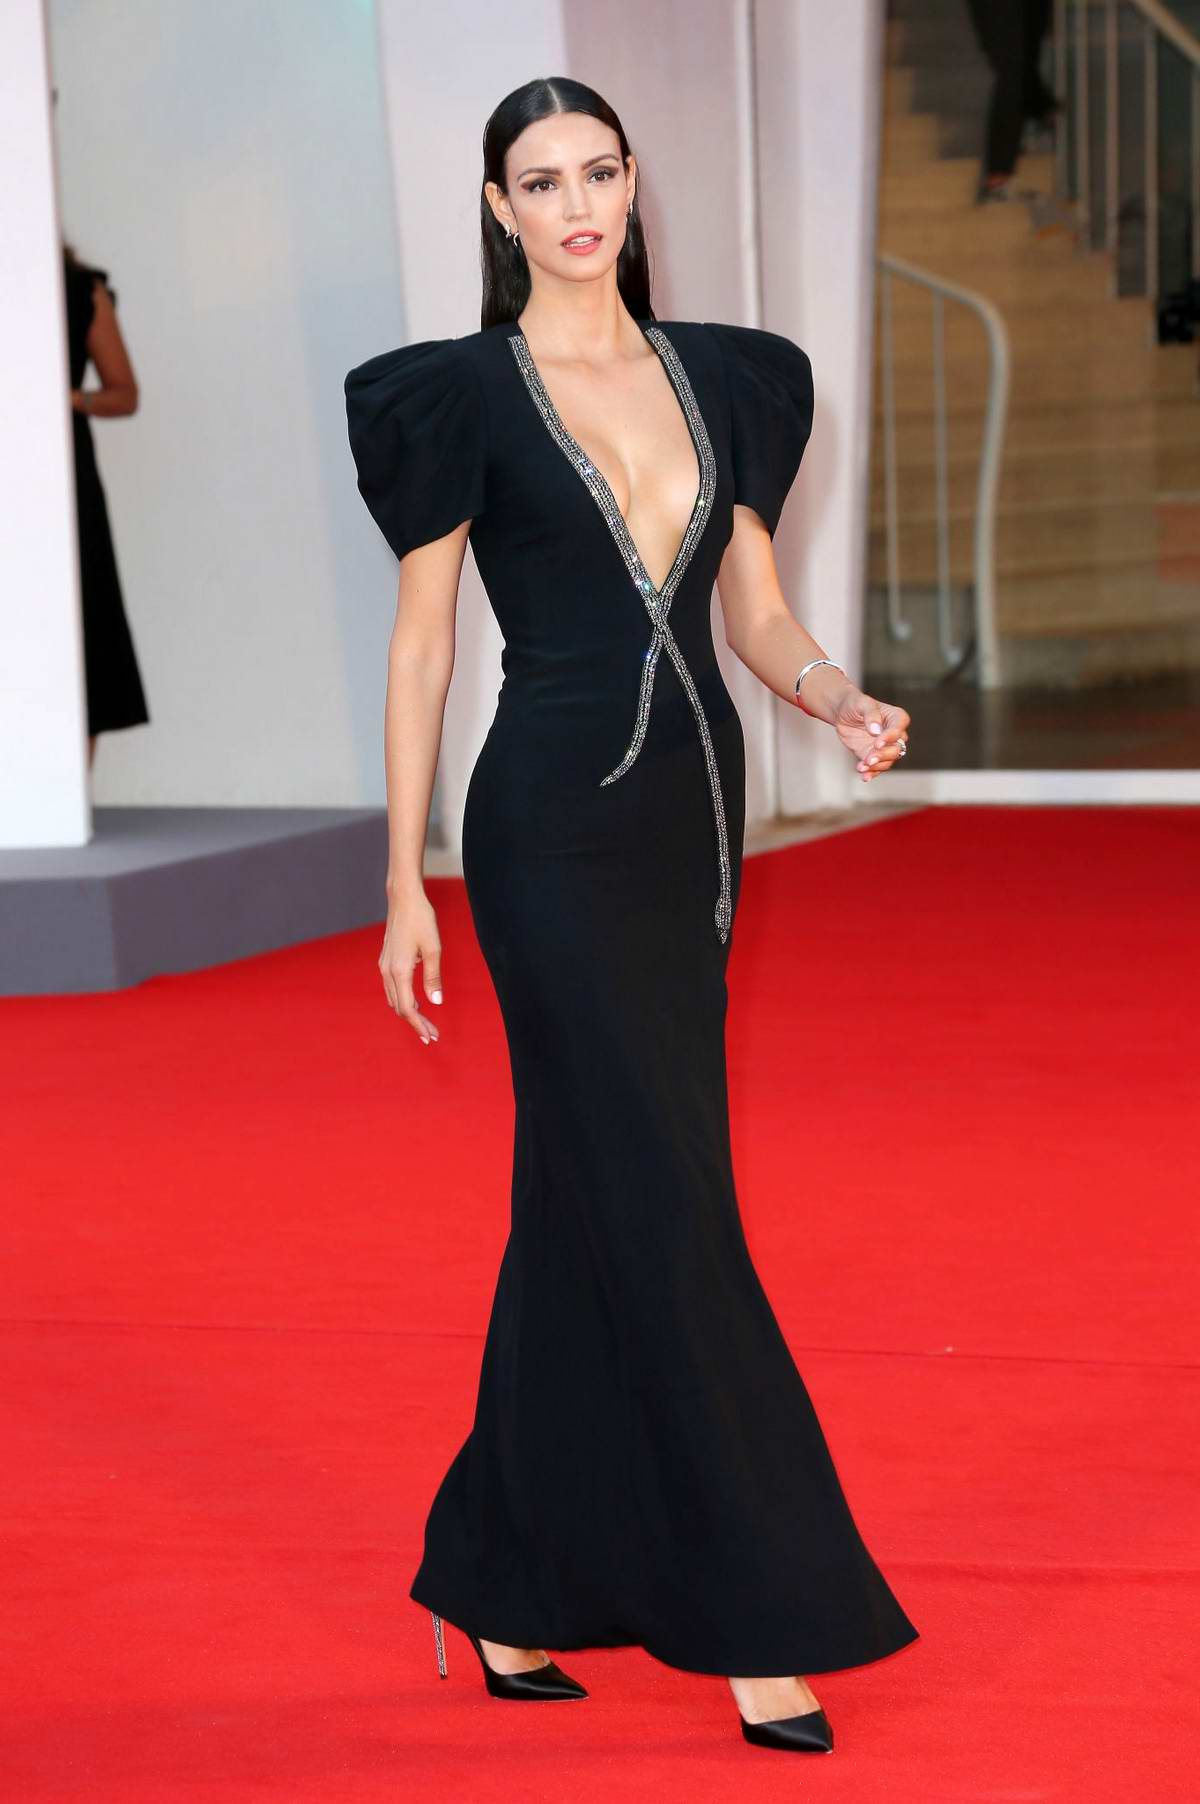 Sofia Resing attends the Premiere of 'Miss Marx' during the 77th Venice Film Festival in Venice, Italy